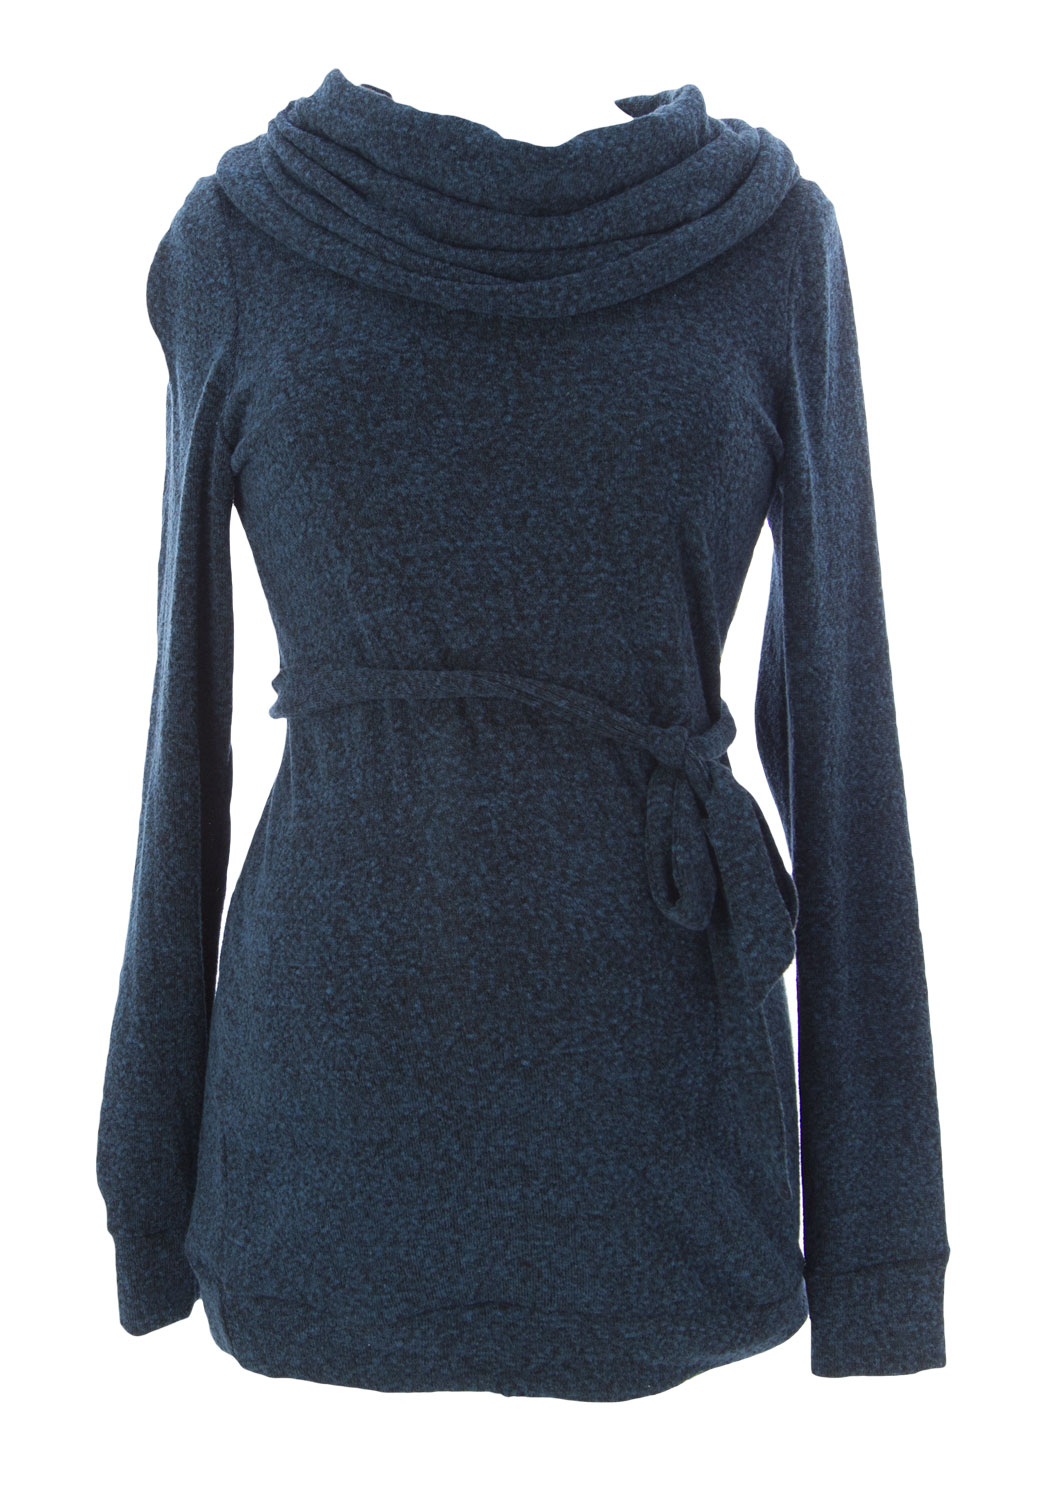 JULES & JIM Maternity Women's Heathered Belted Sweater, Medium, Teal by H13227